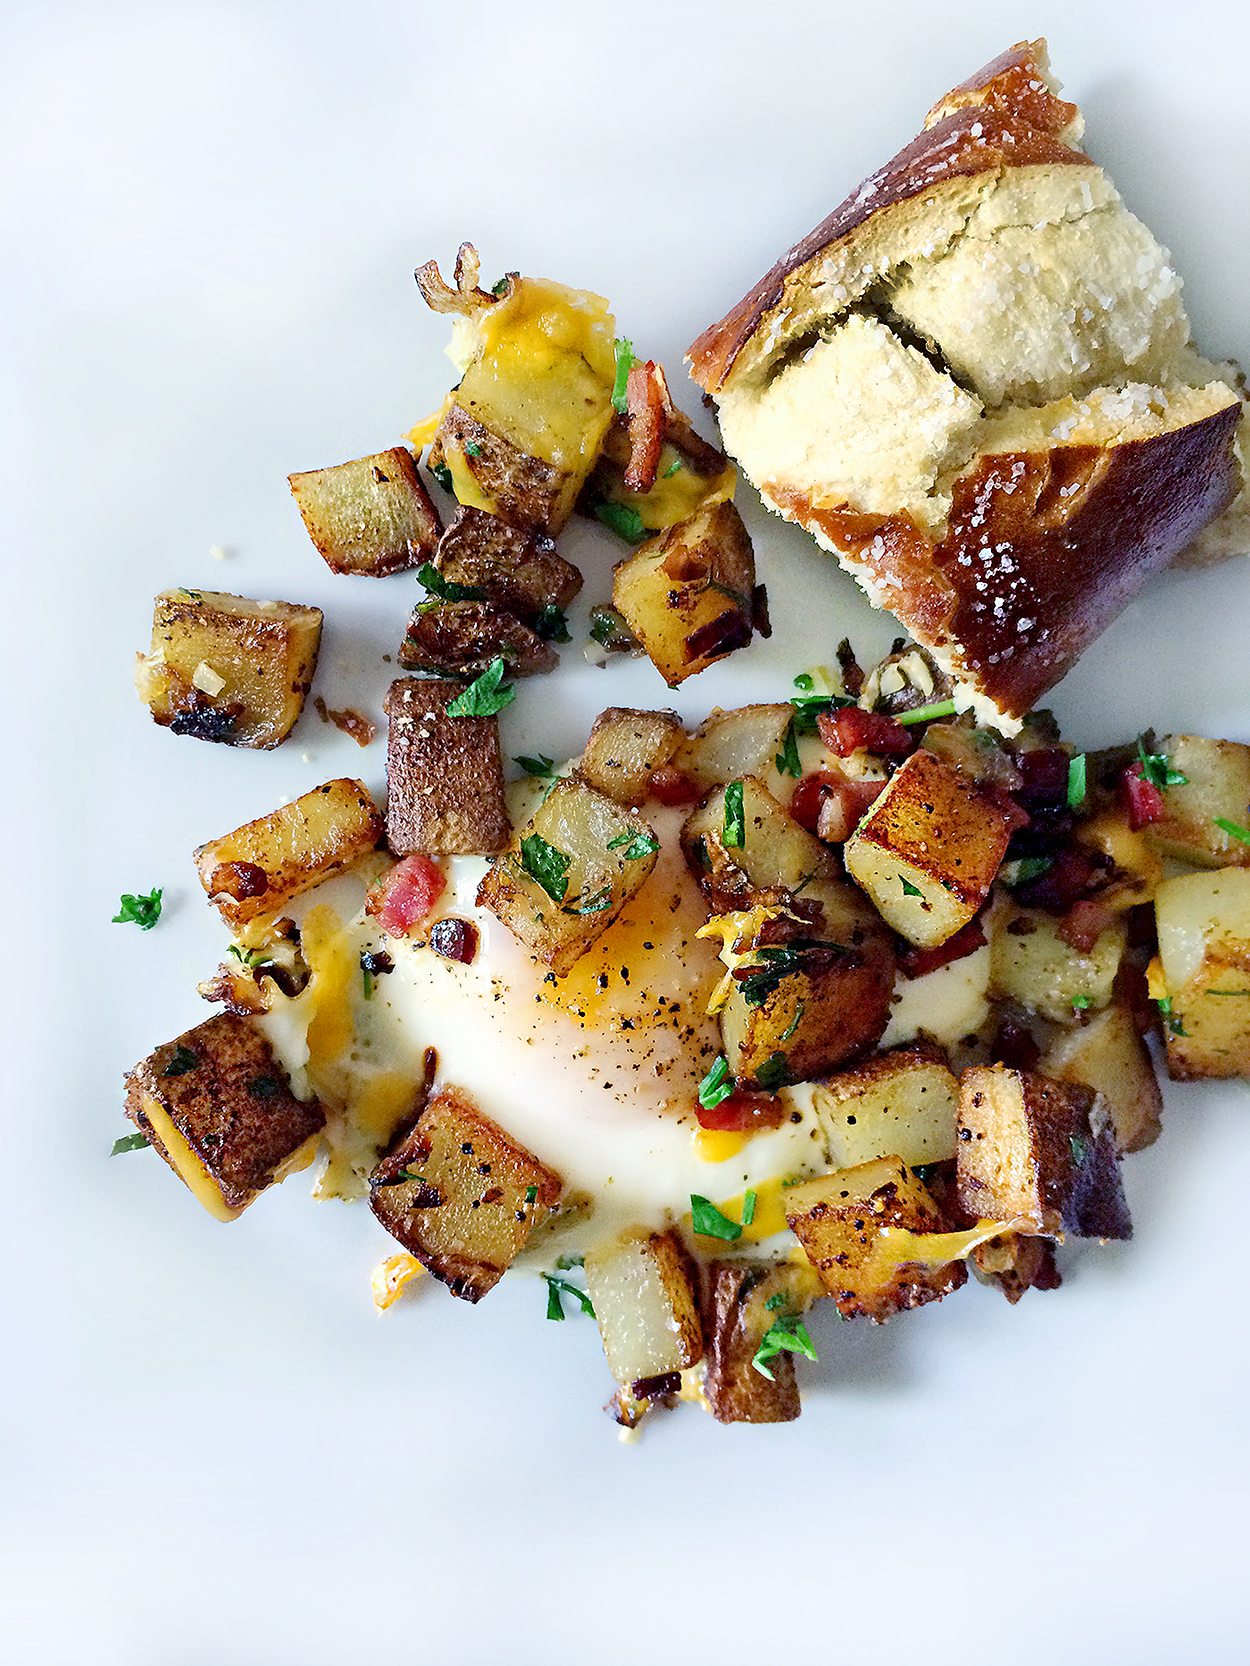 Breakfast potatoes with Pancetta, Eggs and Pretzel Bread.